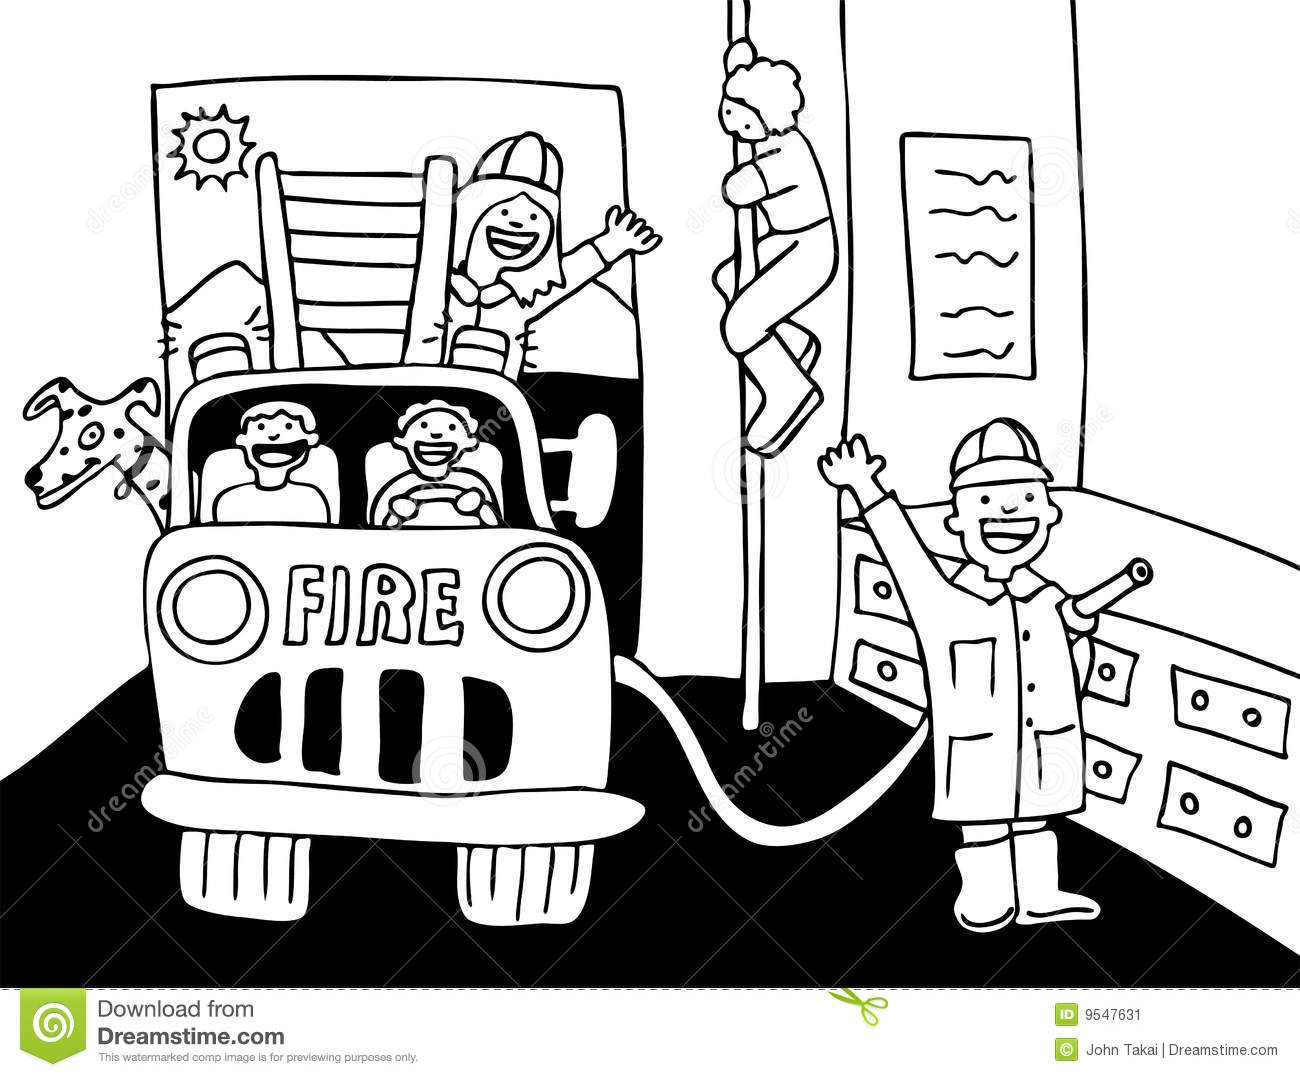 Fire station clipart black and white 1 » Clipart Station